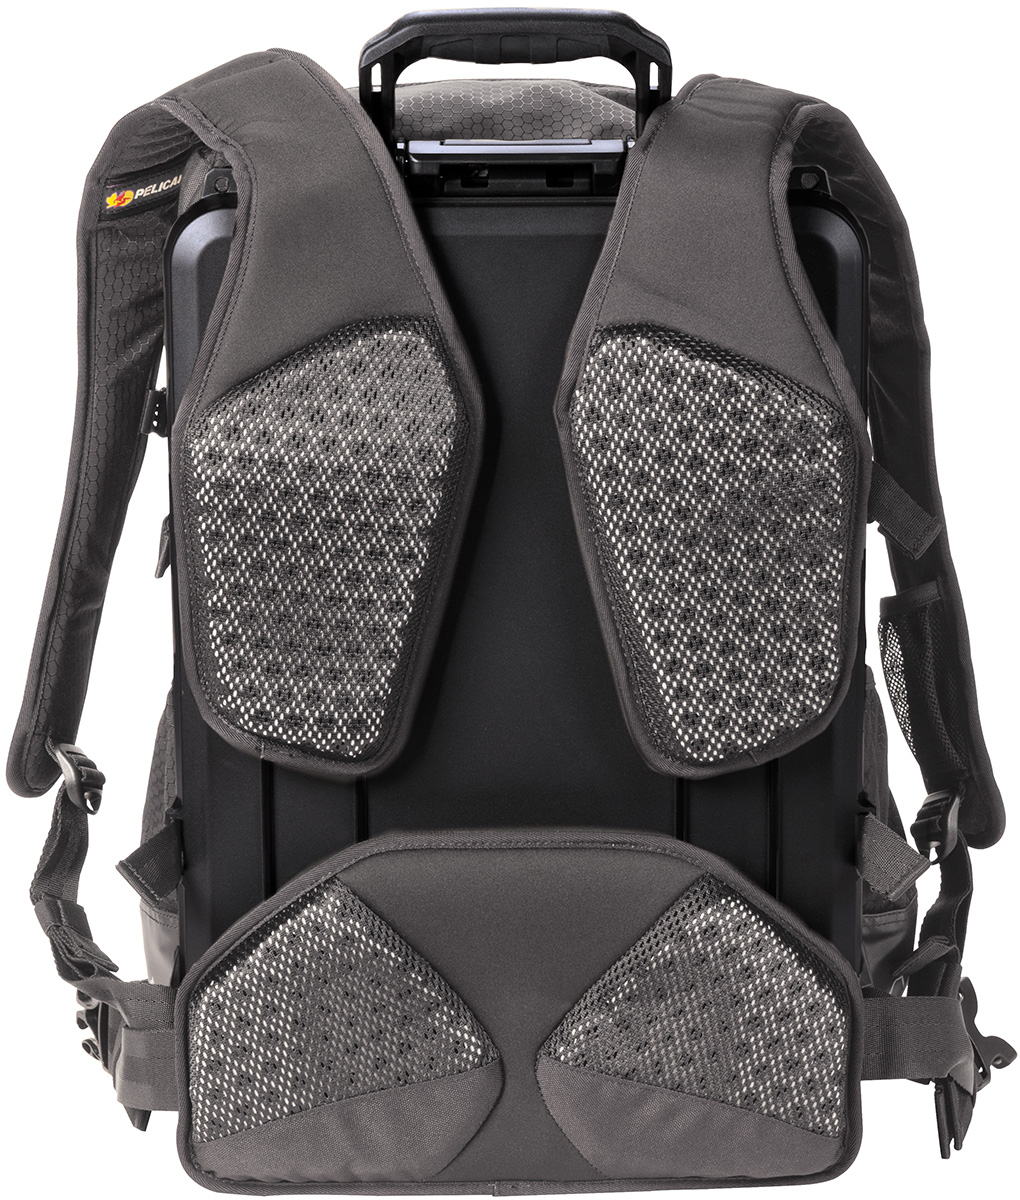 S100 Sport Backpack Pelican